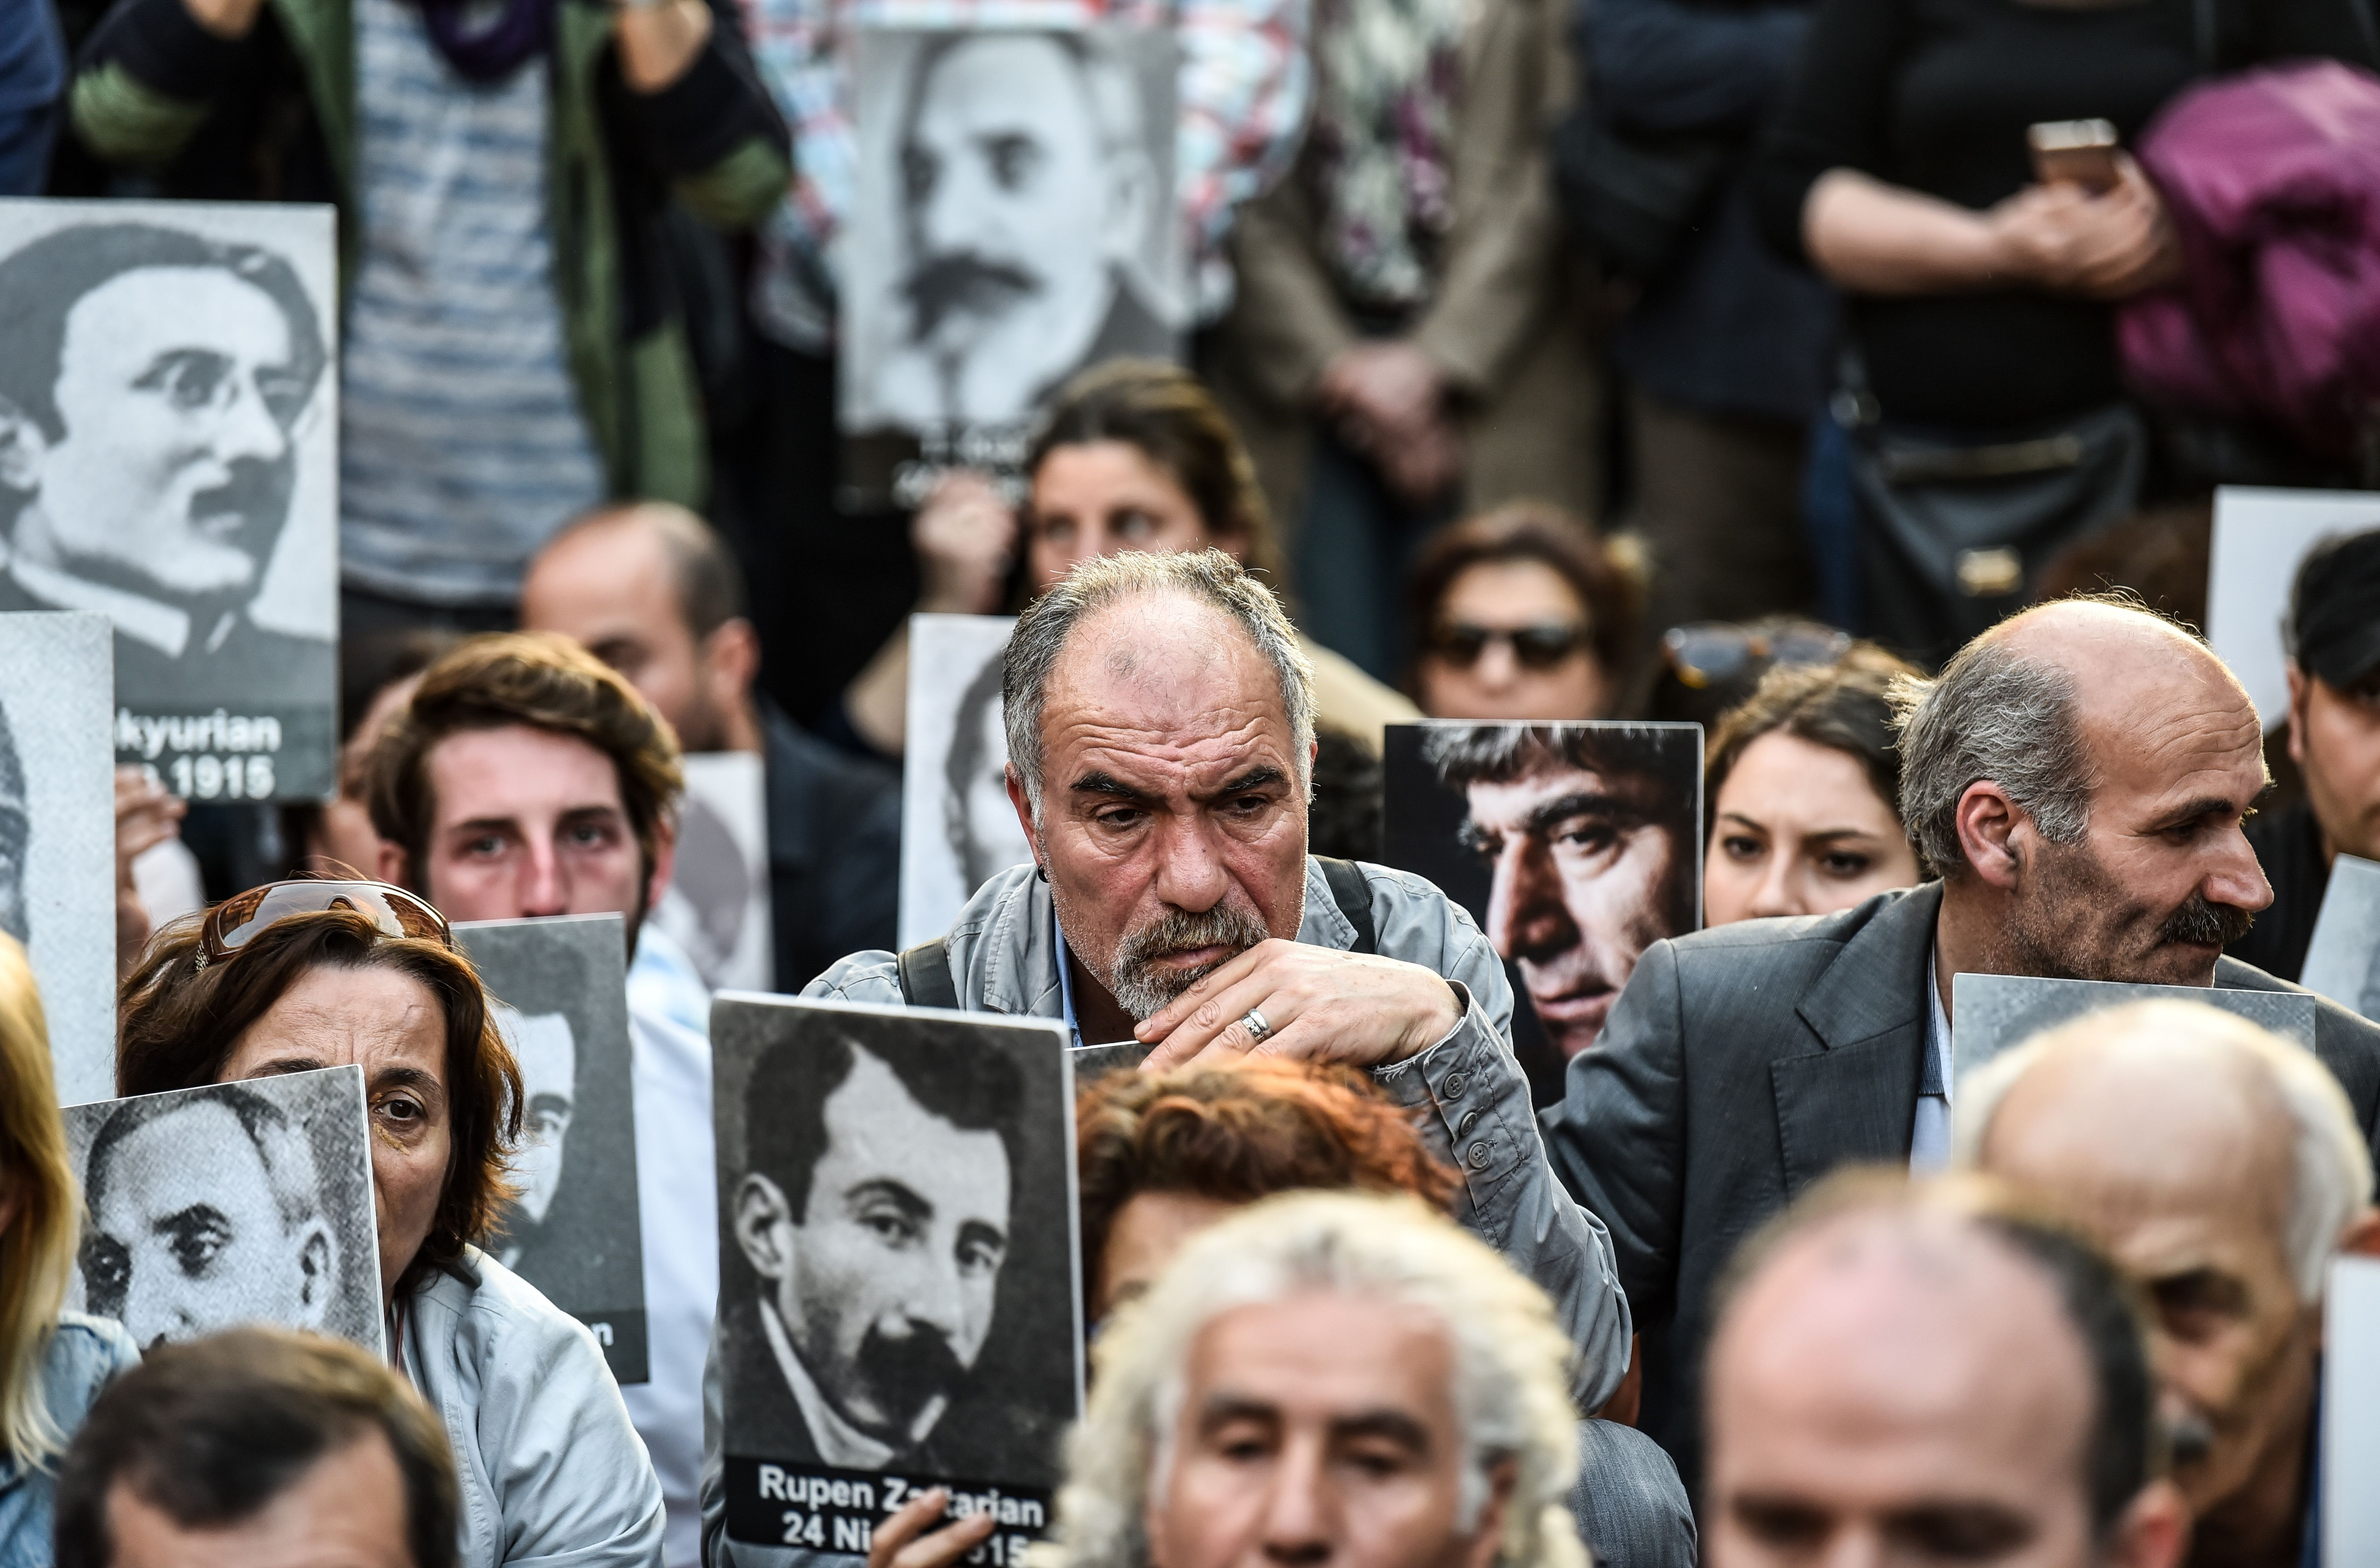 People hold portraits of Armenian intellectuals - who were detained and deported in 1915 - during a rally on Istiklal Avenue in Istanbul on April 24, 2018, held to commemorate the 103nd anniversary of the 1915 mass killing of Armenians in the Ottoman Empire. ( BULENT KILIC/AFP via Getty Images)